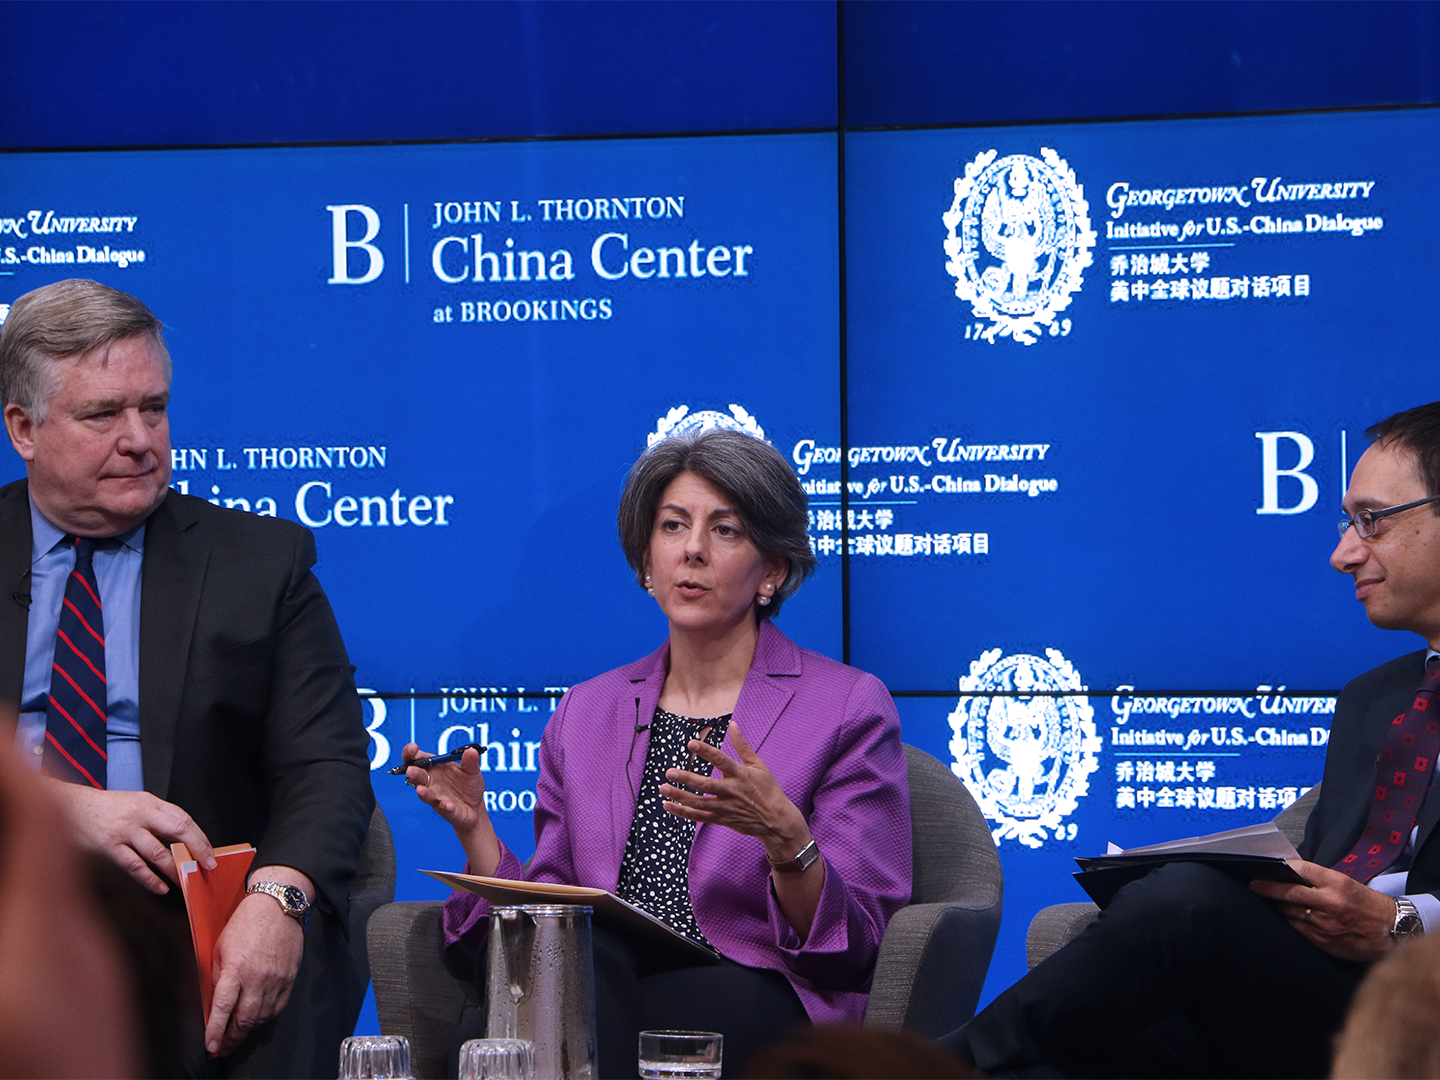 Amy Celico describes her time working on trade issues between the U.S. and China.